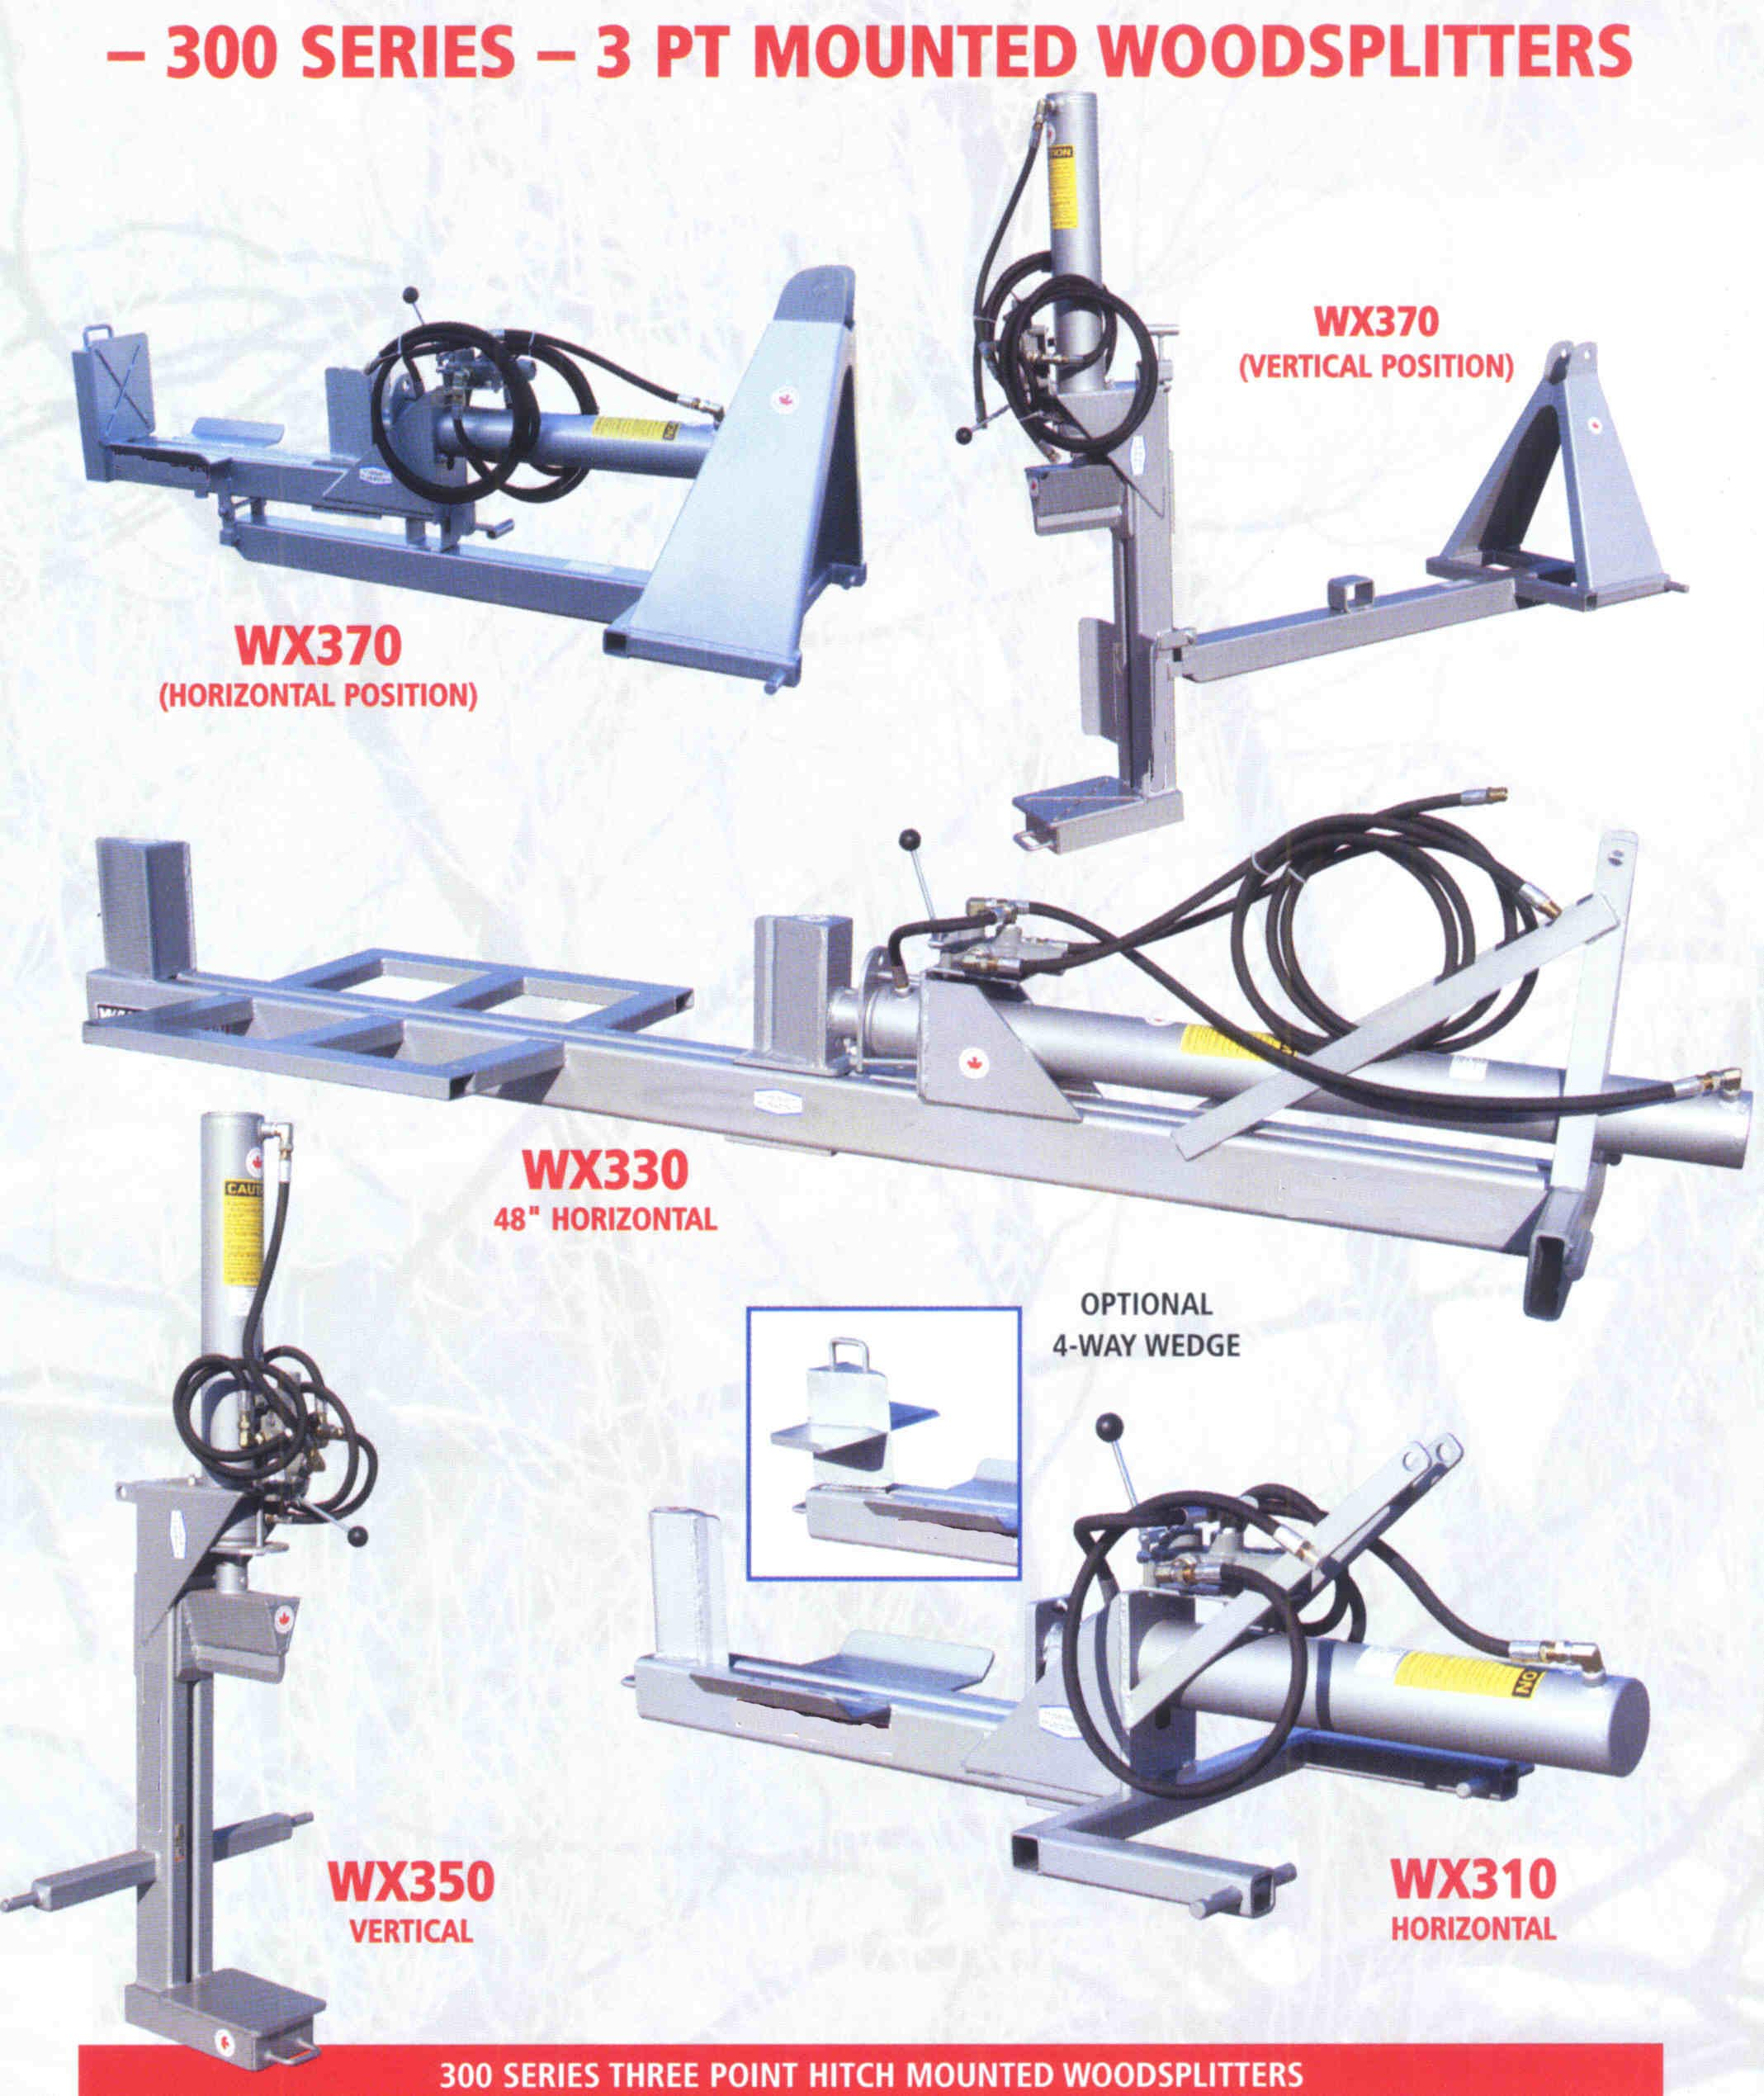 Three Point Hitch Mount Models